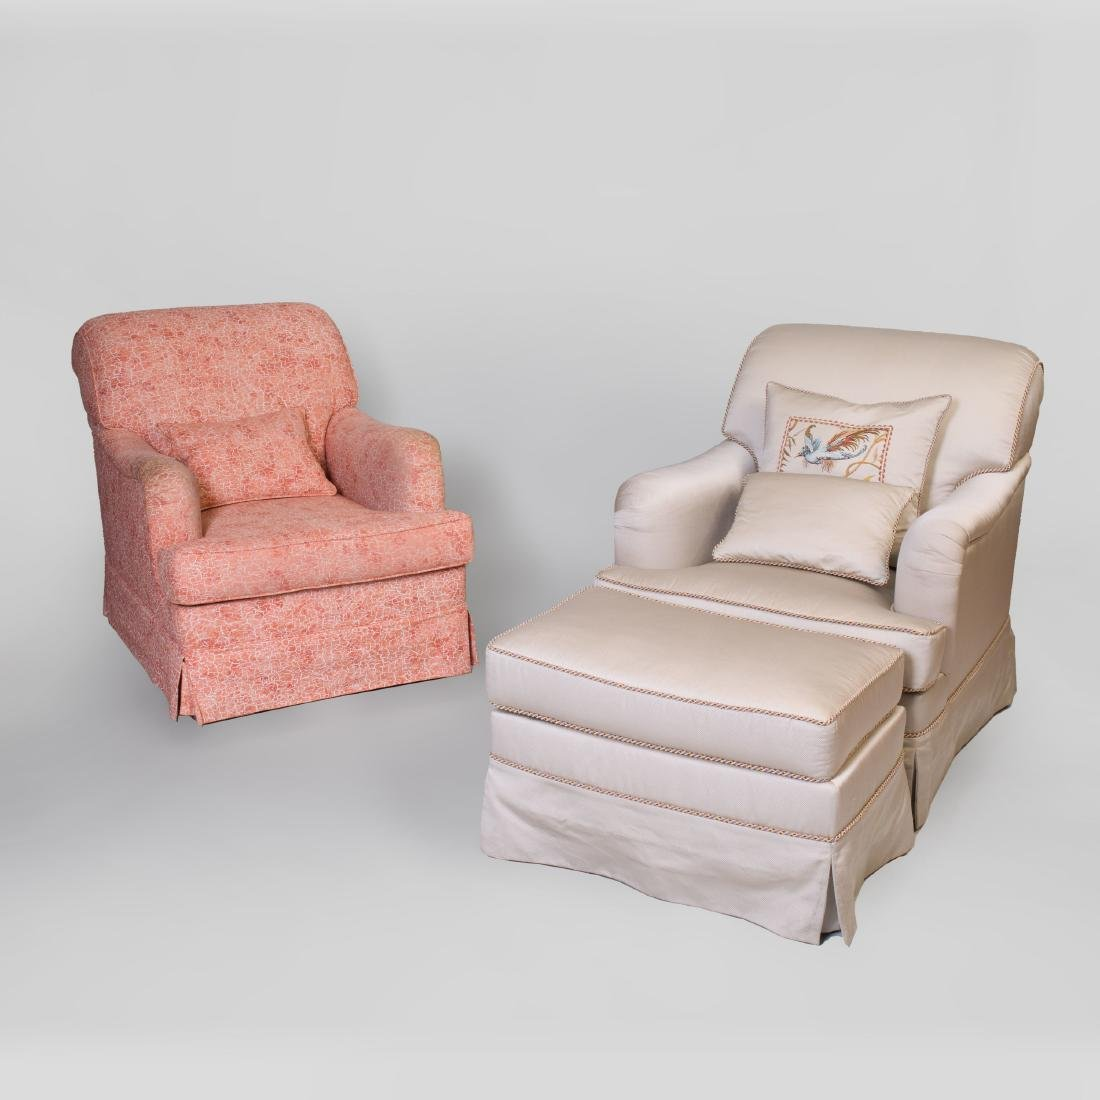 Two Upholstered Club Chairs